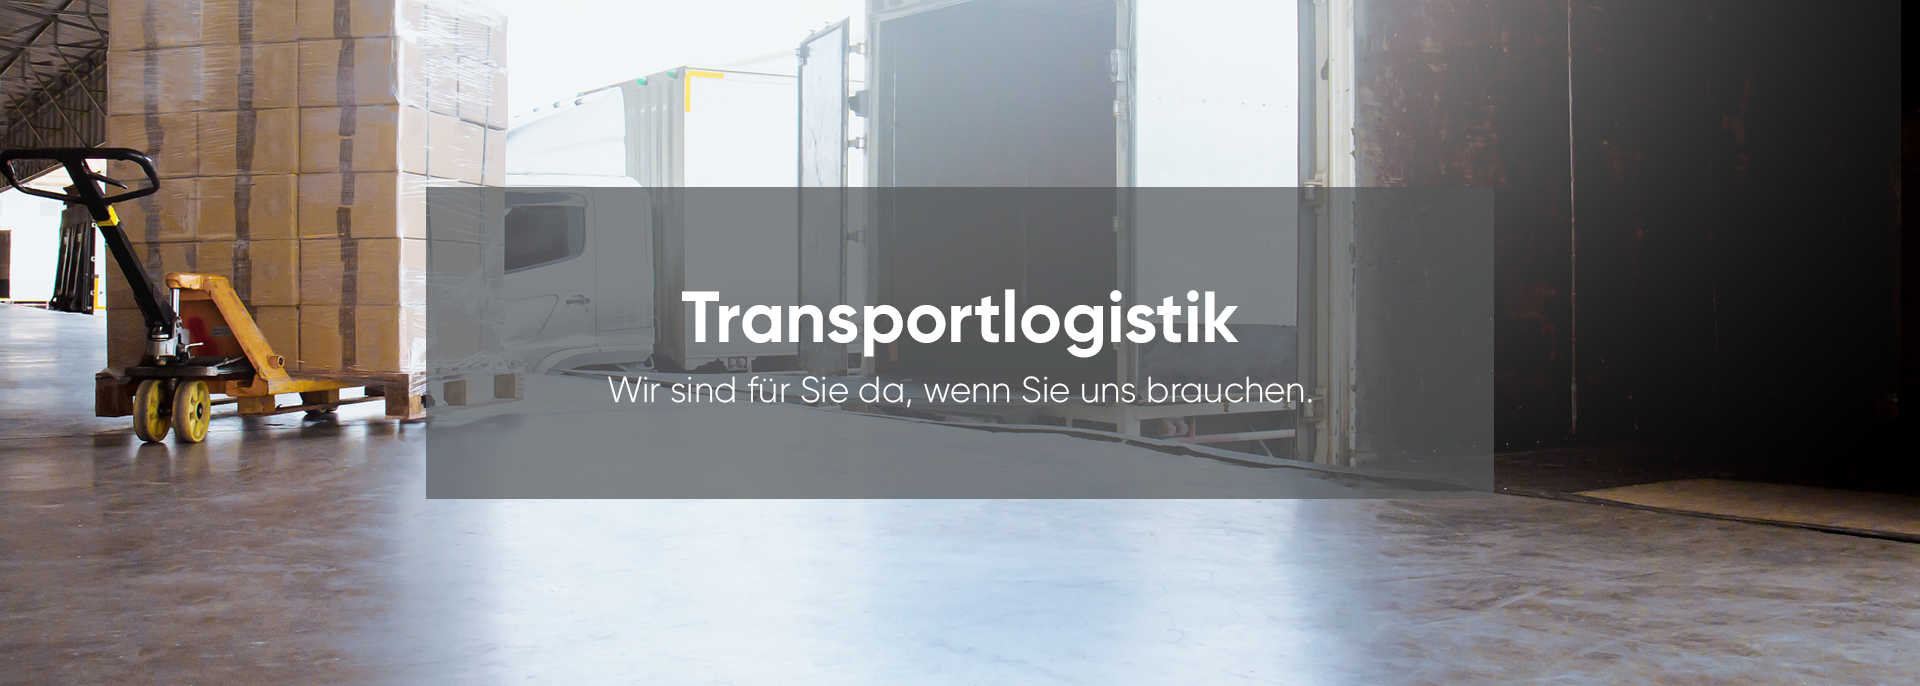 Transportlogistik by Deventer